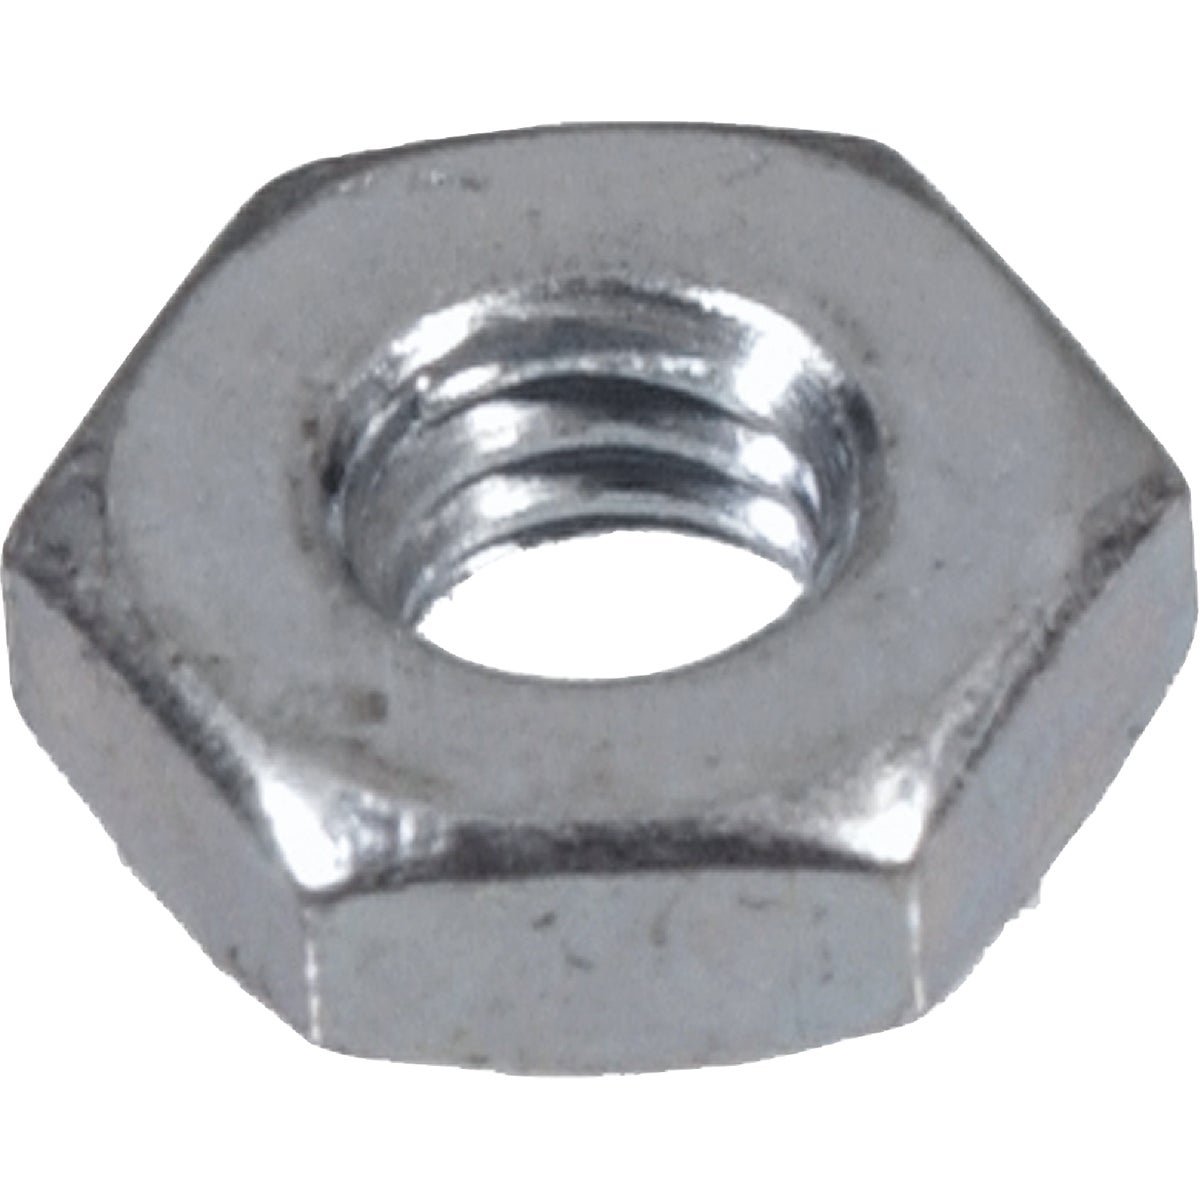 10-24 MACHINE SCREW NUT